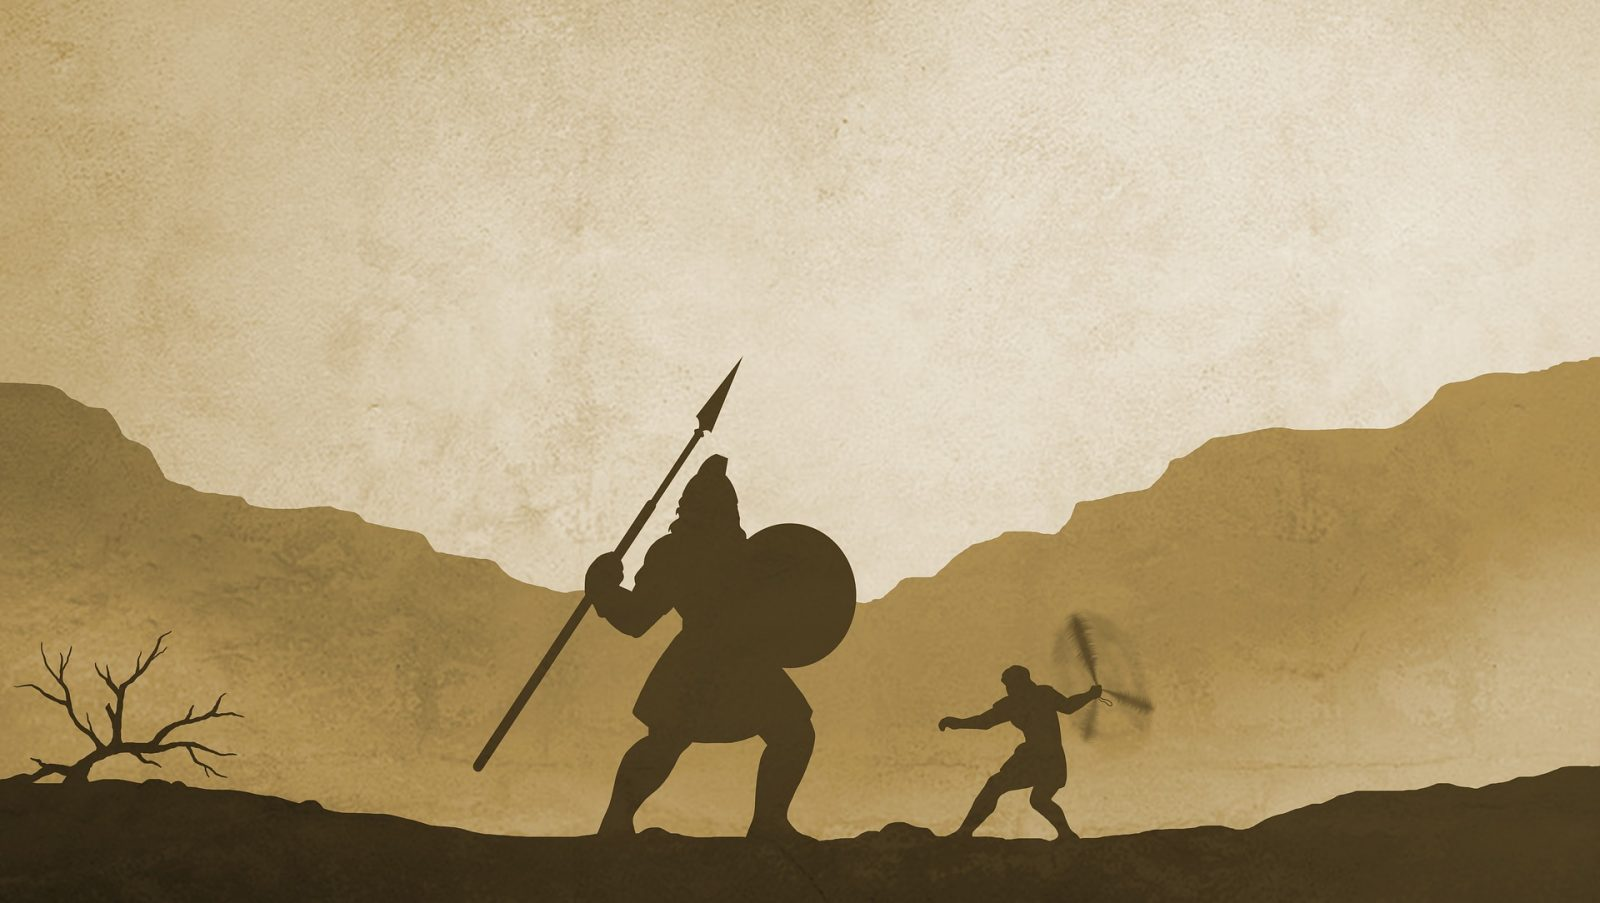 David and Goliath: A Business Perspective